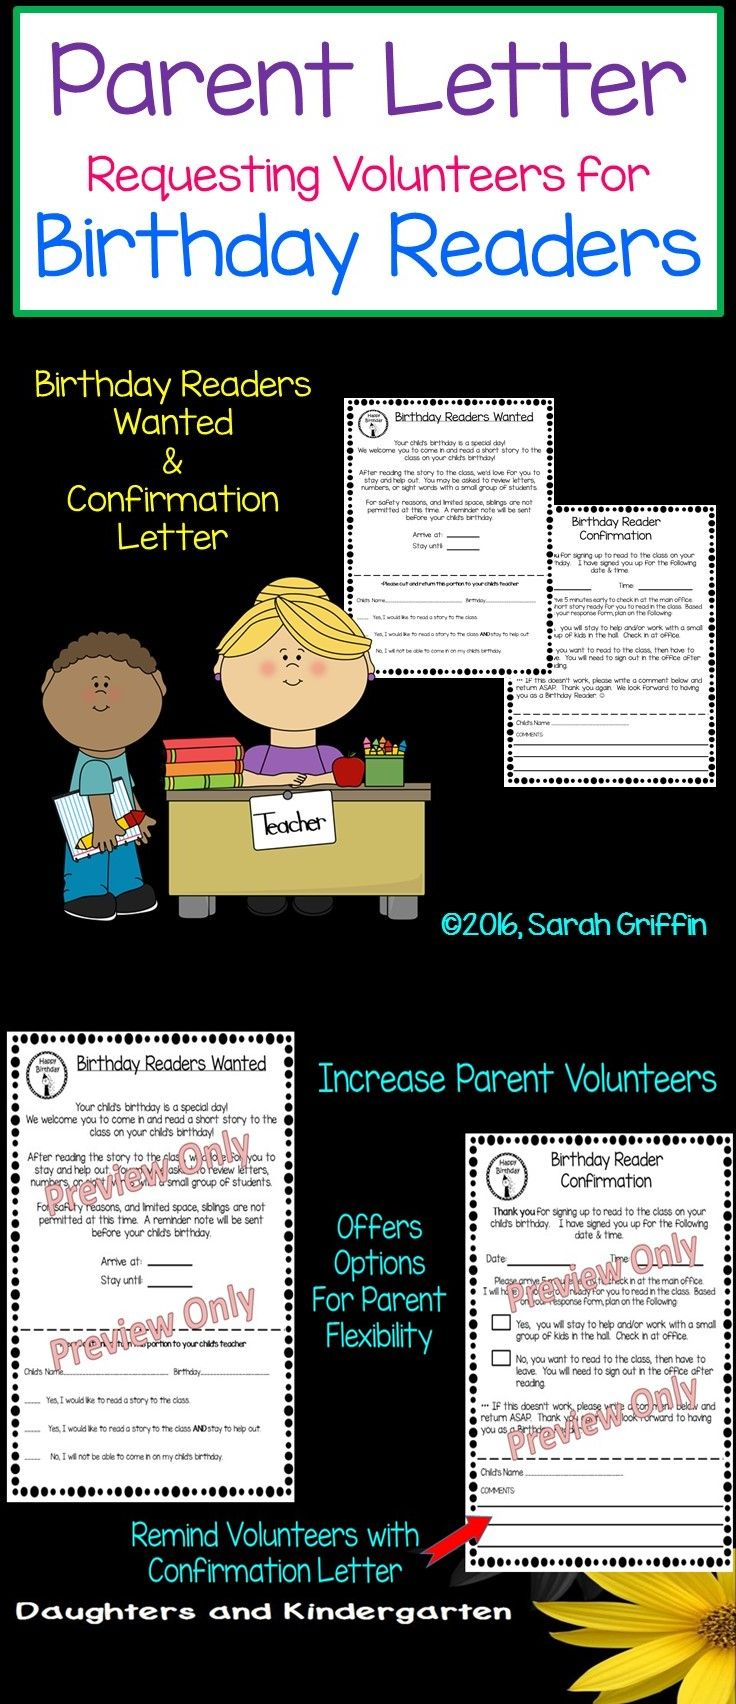 Parent Volunteer Letter requesting Birthday Readers. Confirmation letter included! Sarah Griffin, Daughters and Kindergarten https://www.teacherspayteachers.com/Product/Parent-Volunteer-Letter-Birthday-Readers--1355646